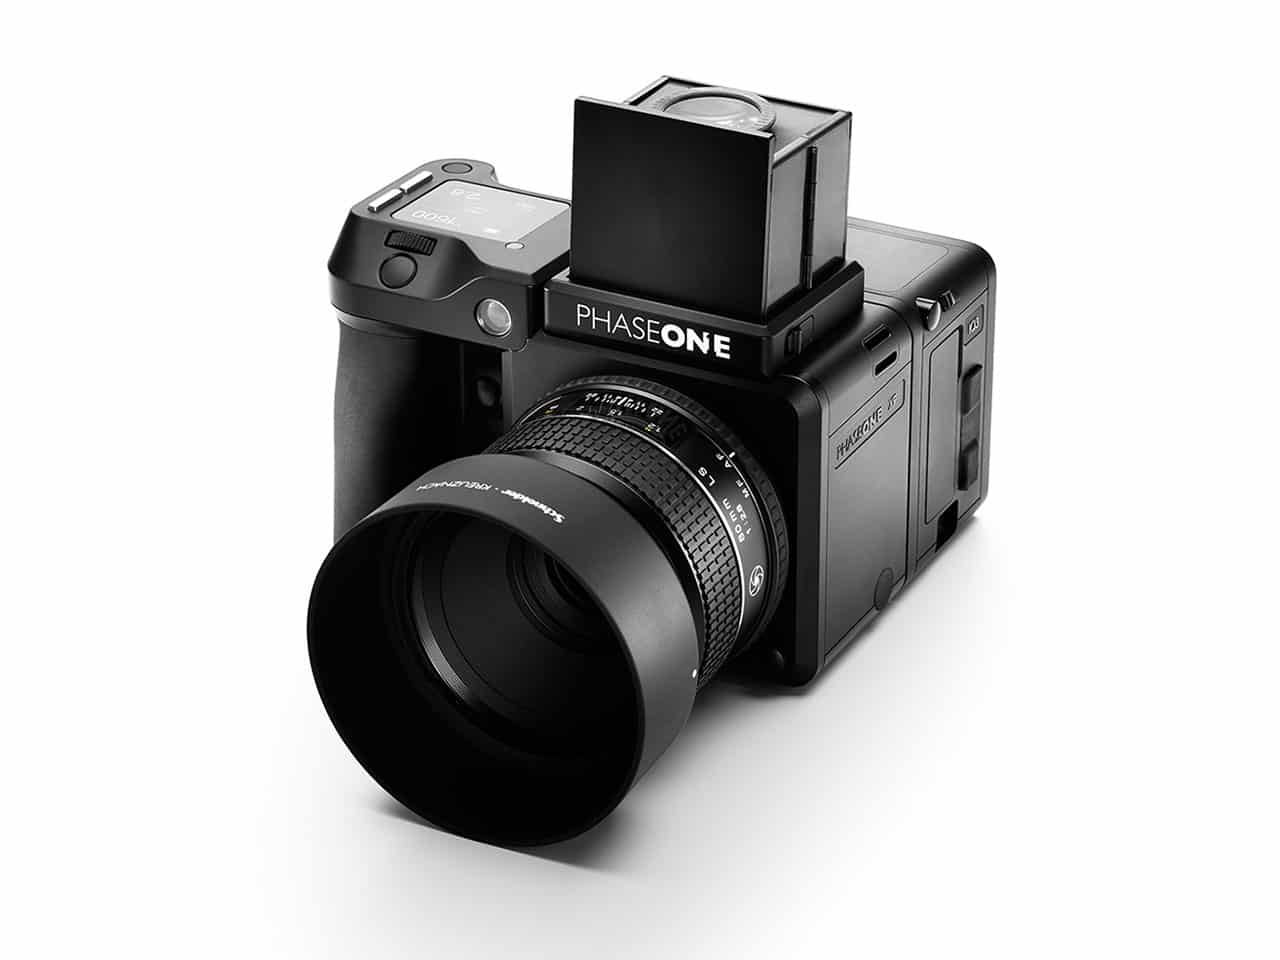 phase-one-xf-camera-2